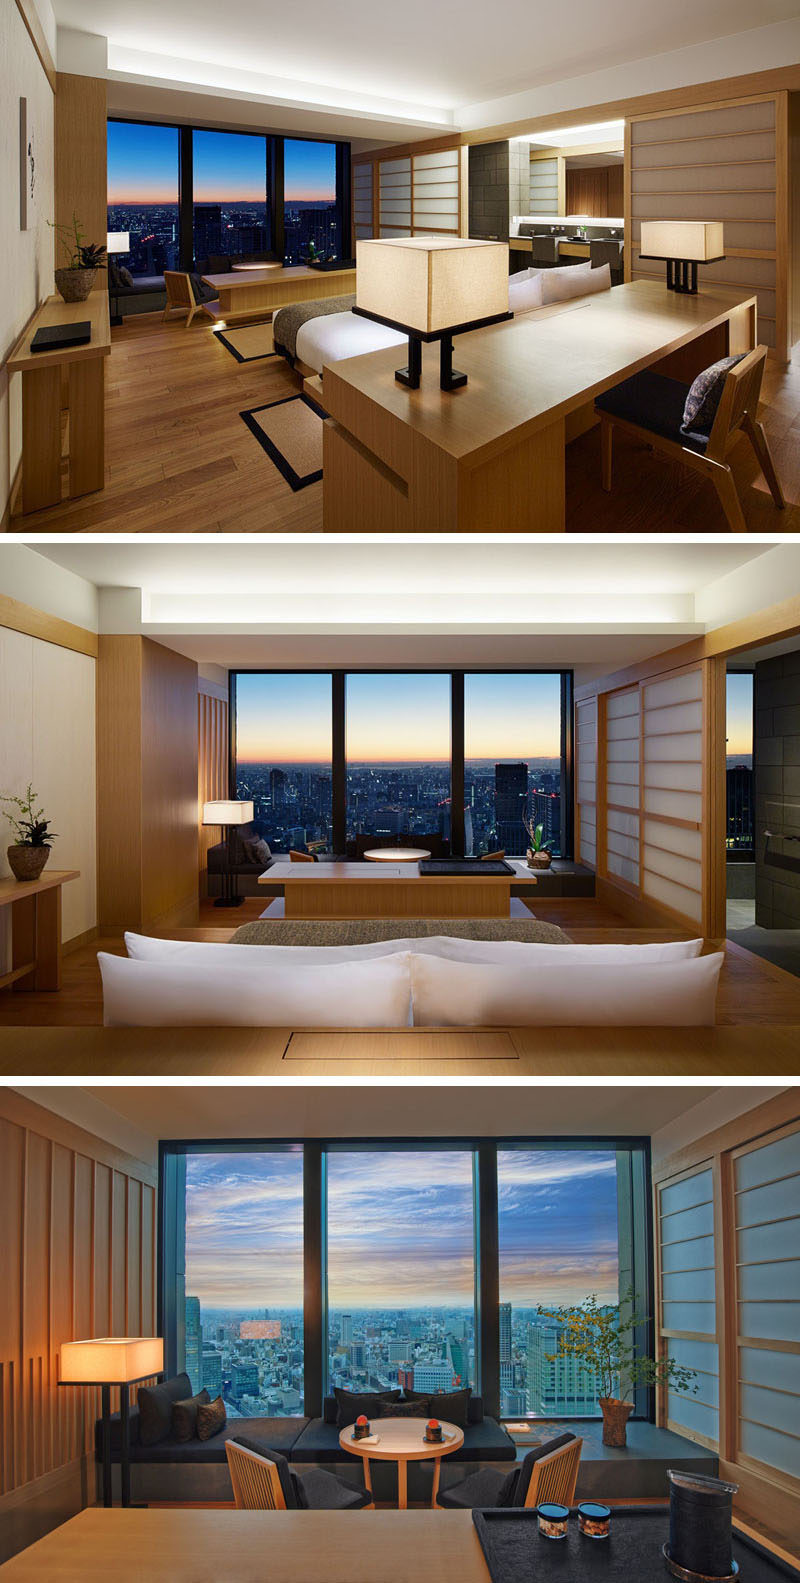 Interior Design Culture how-to mix contemporary interior design with elements of japanese